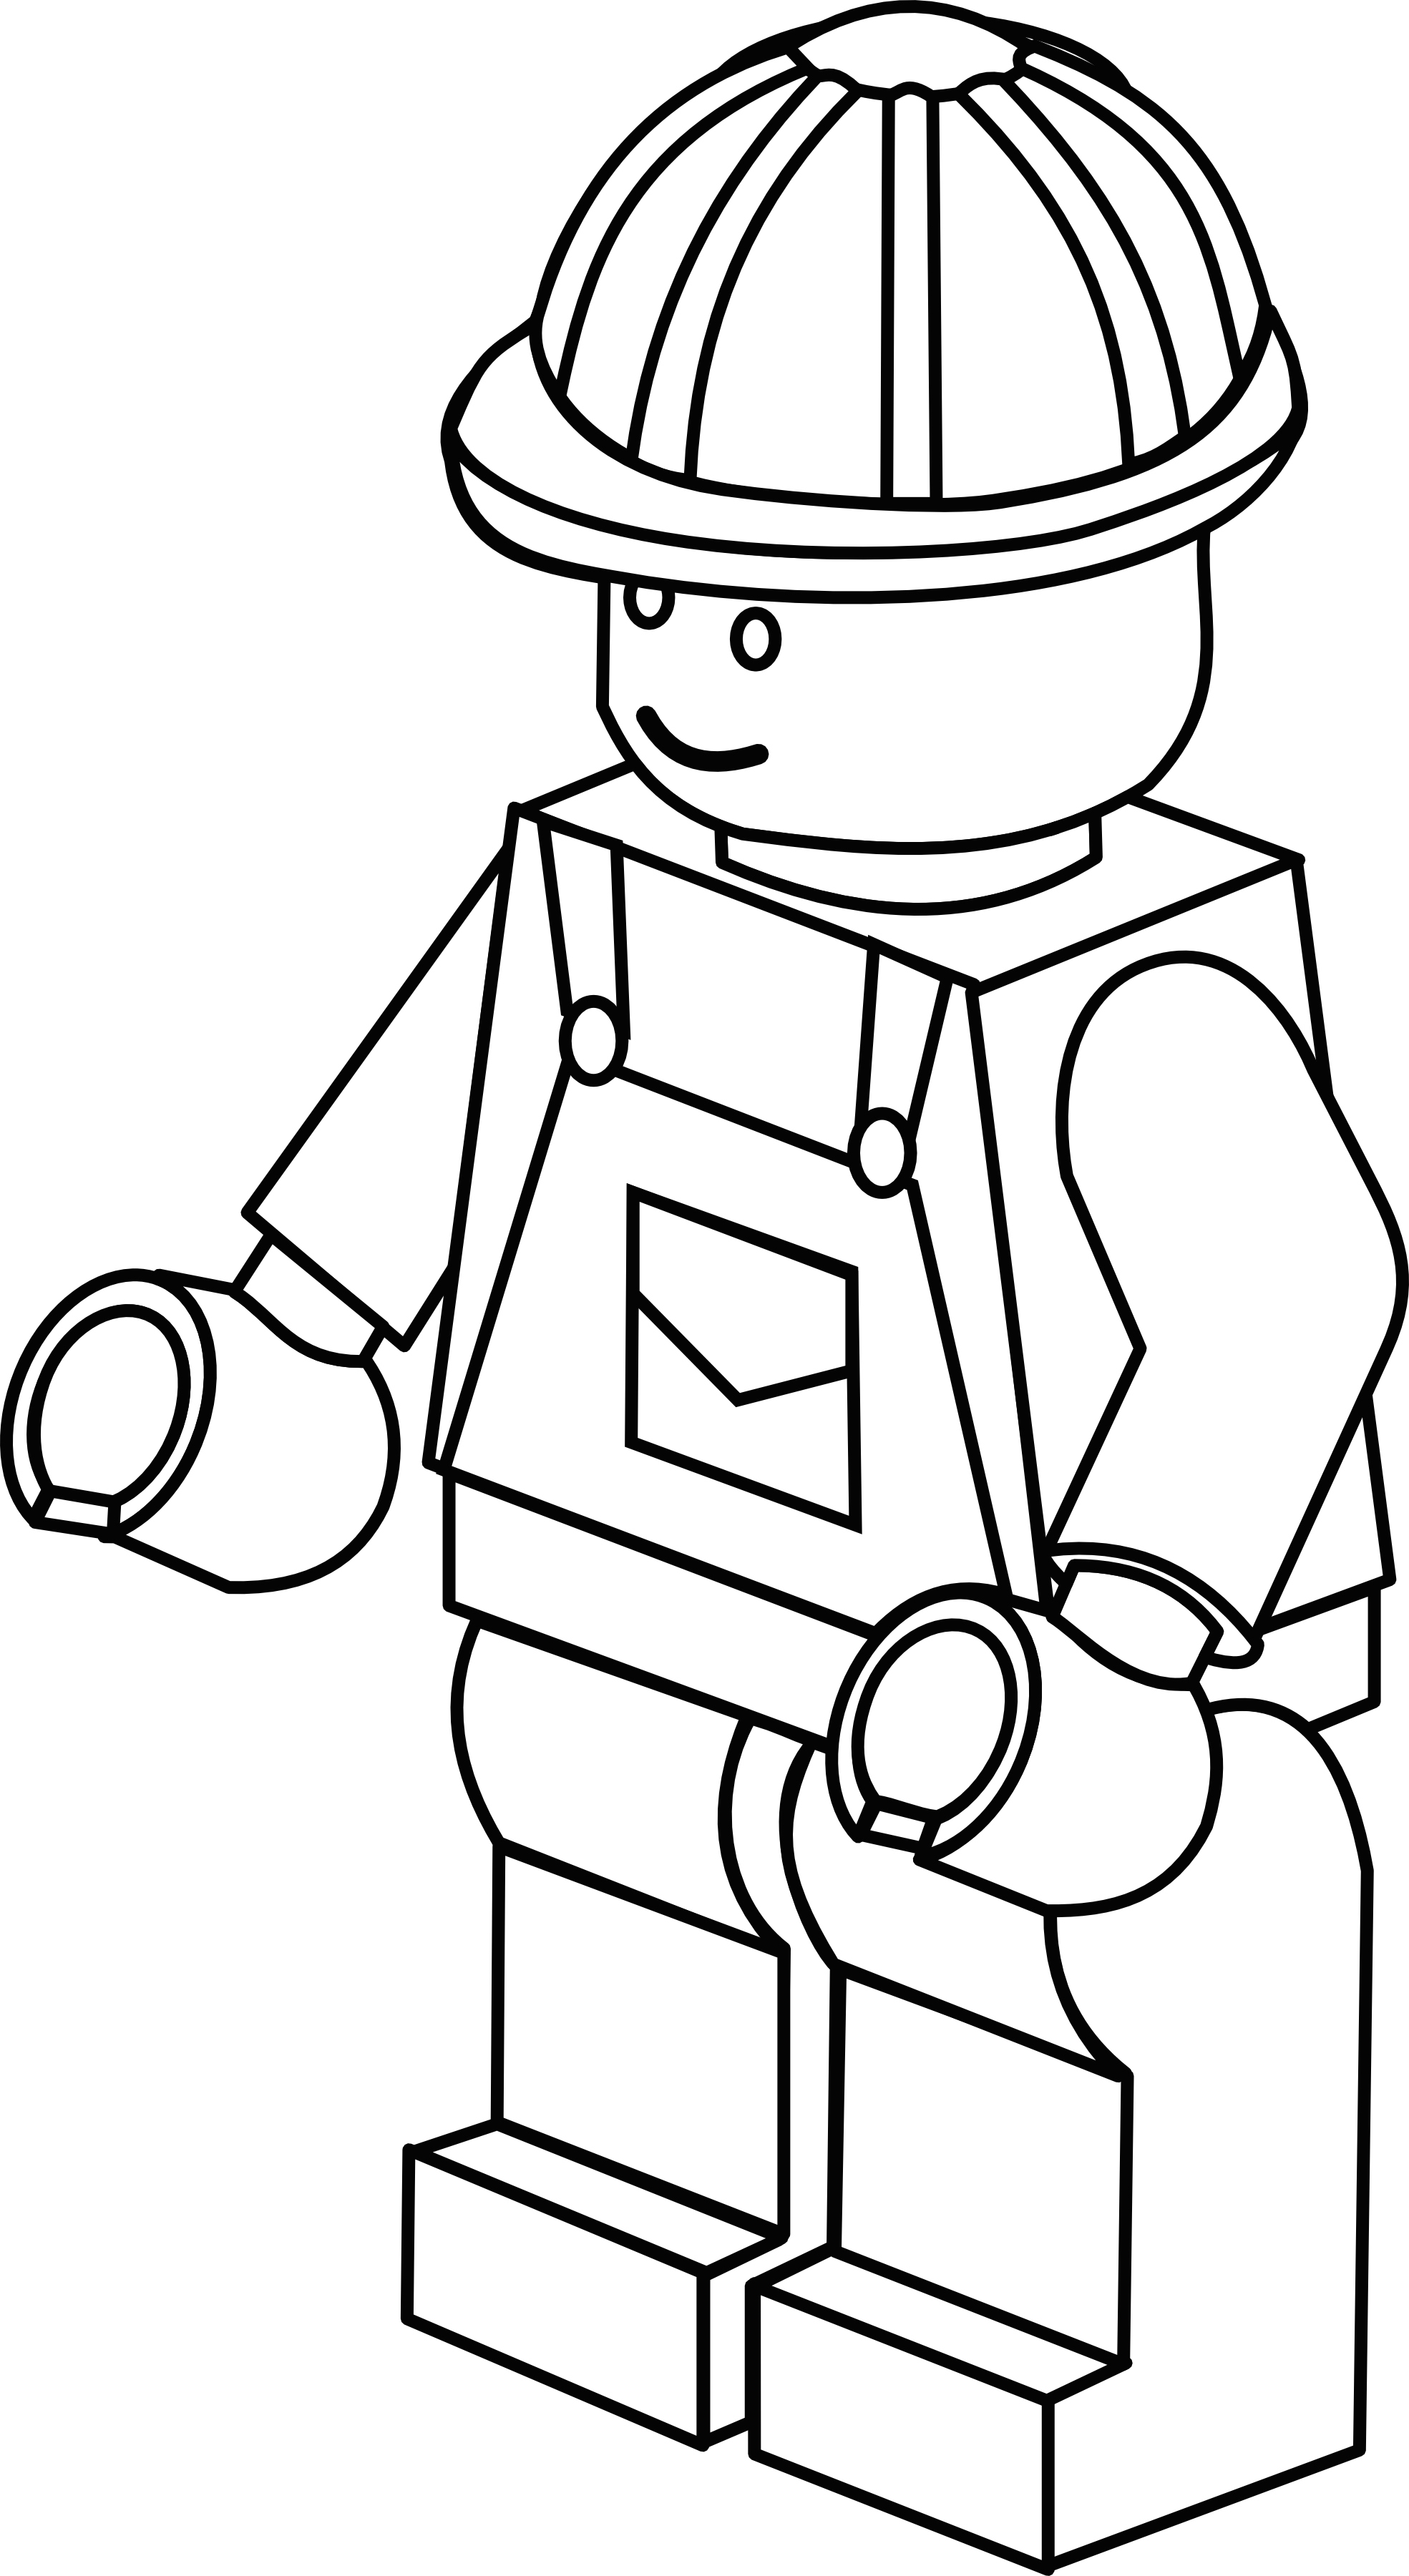 More complex lego figure. Fireman clipart colouring page